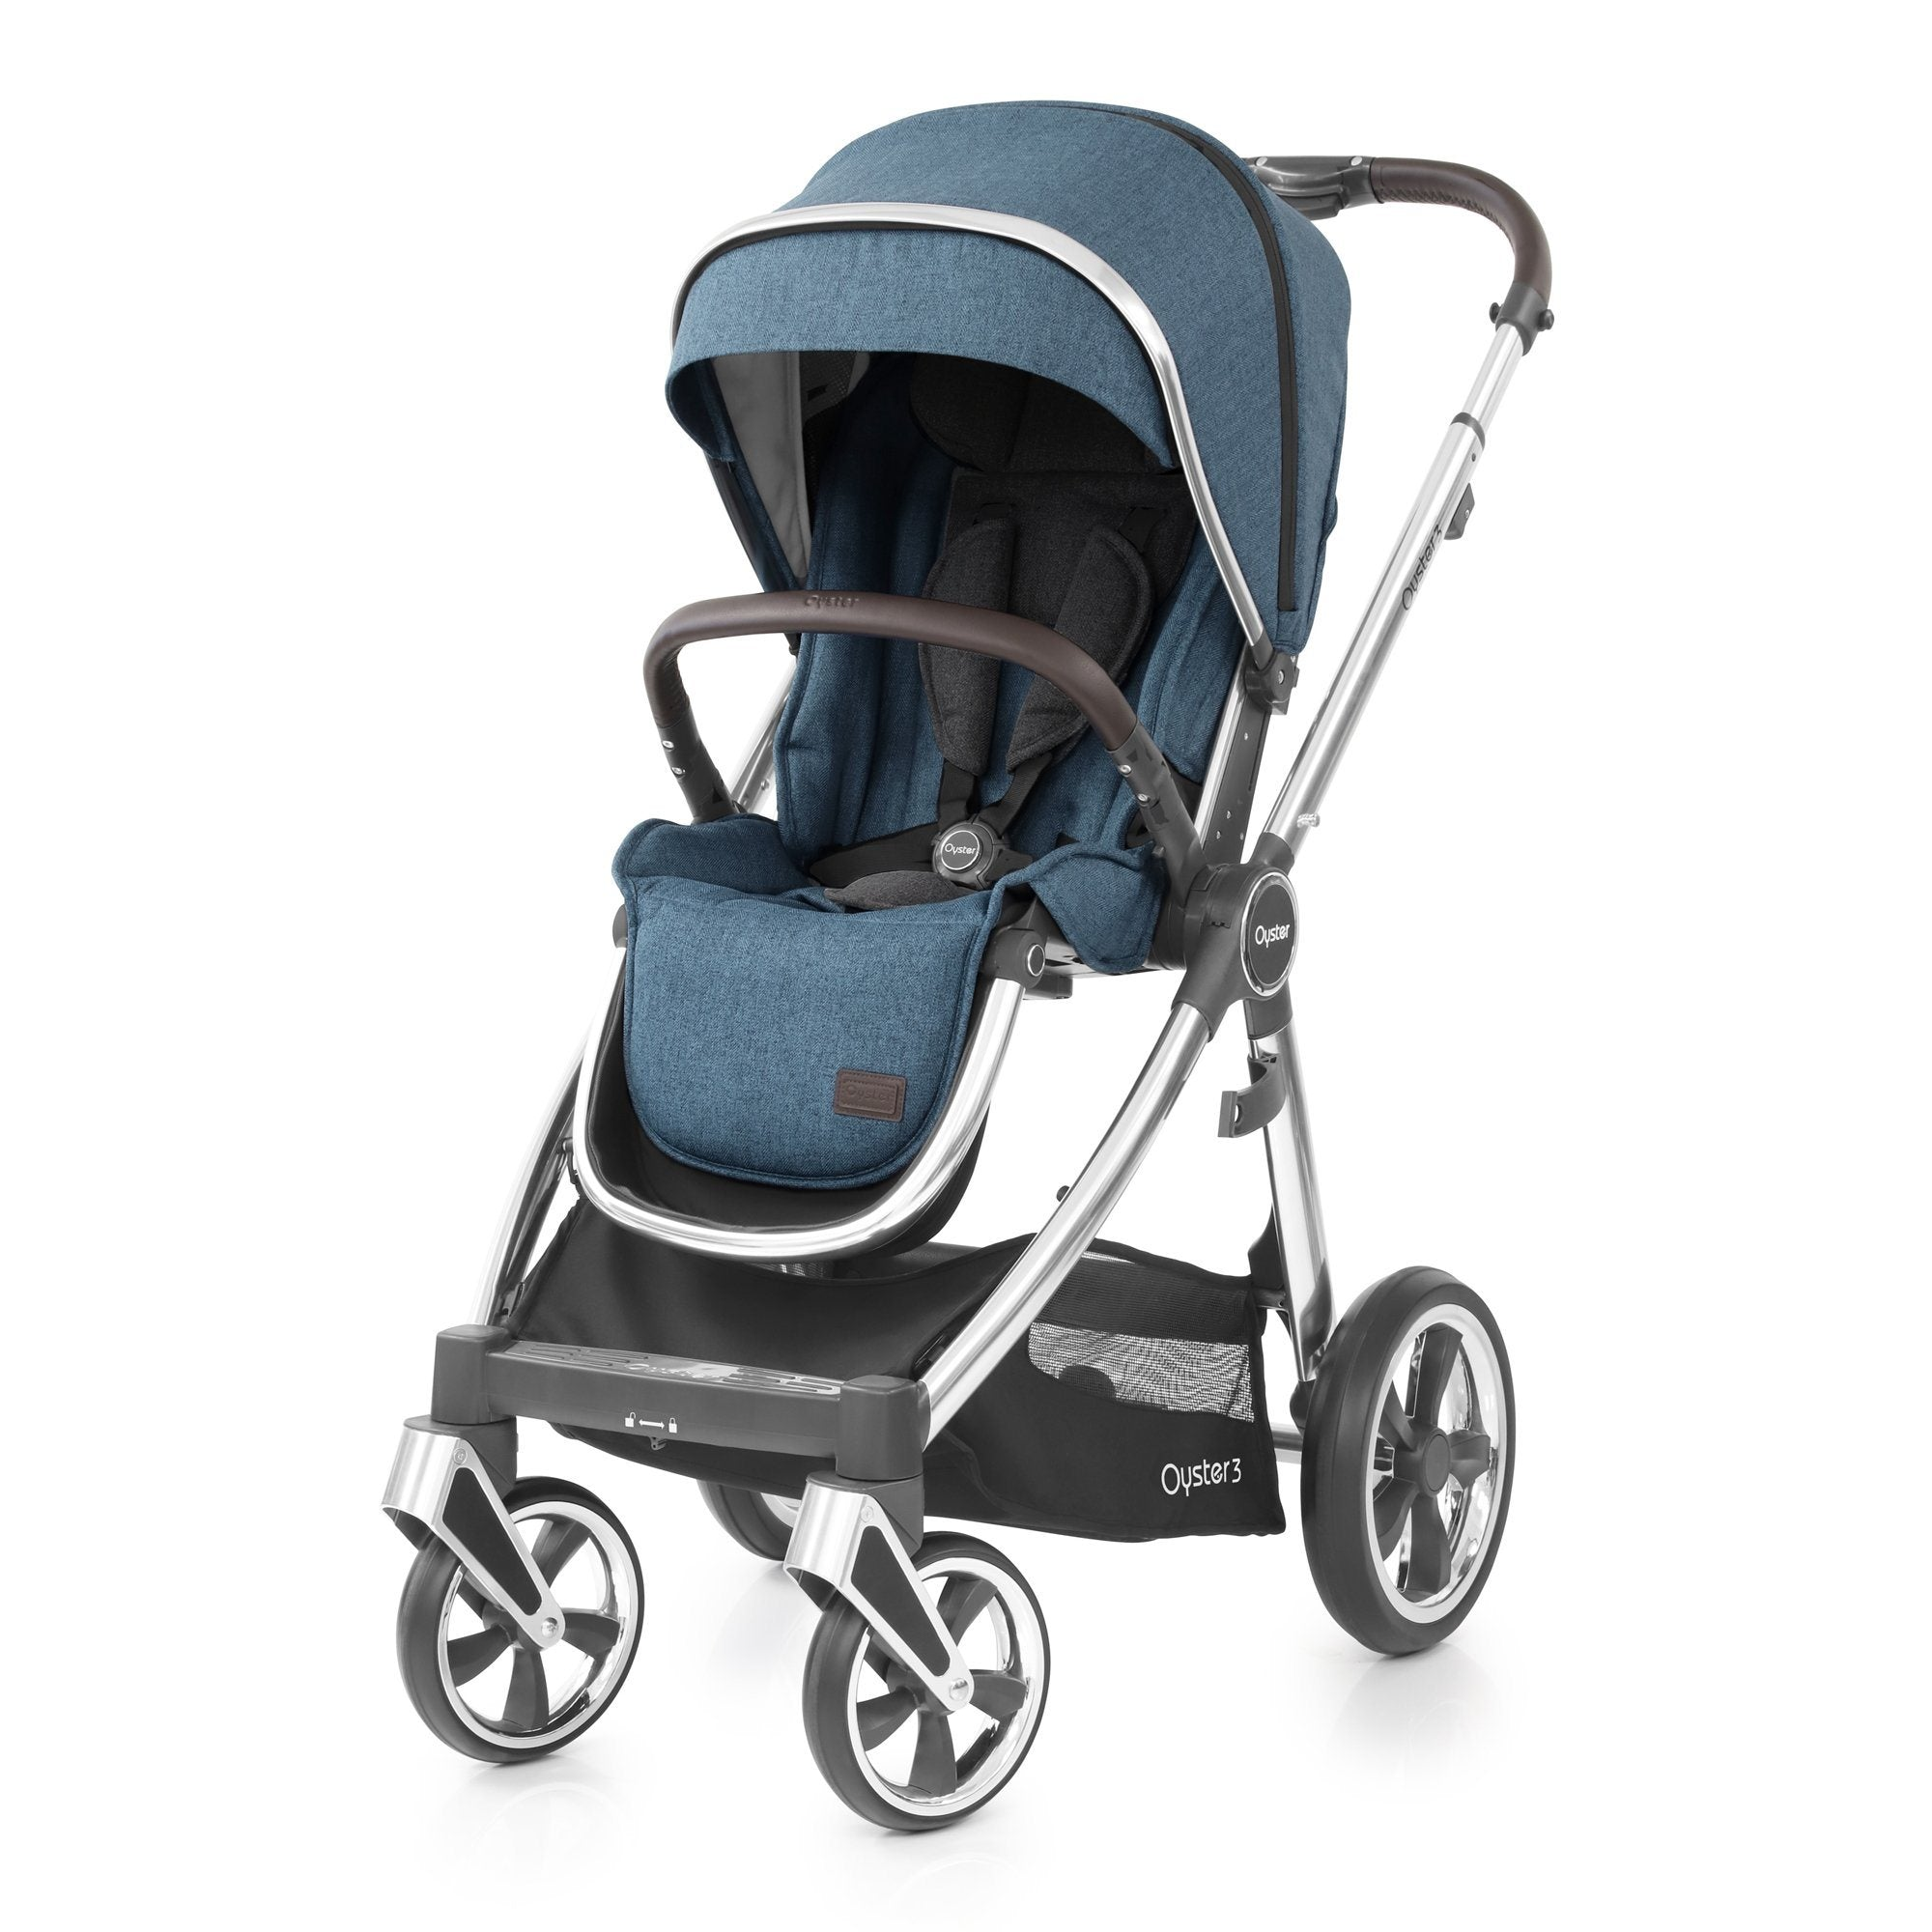 BabyStyle Oyster 3 Regatta Luxury Bundle with Maxi-Cosi Cabriofix - Pushchair Expert